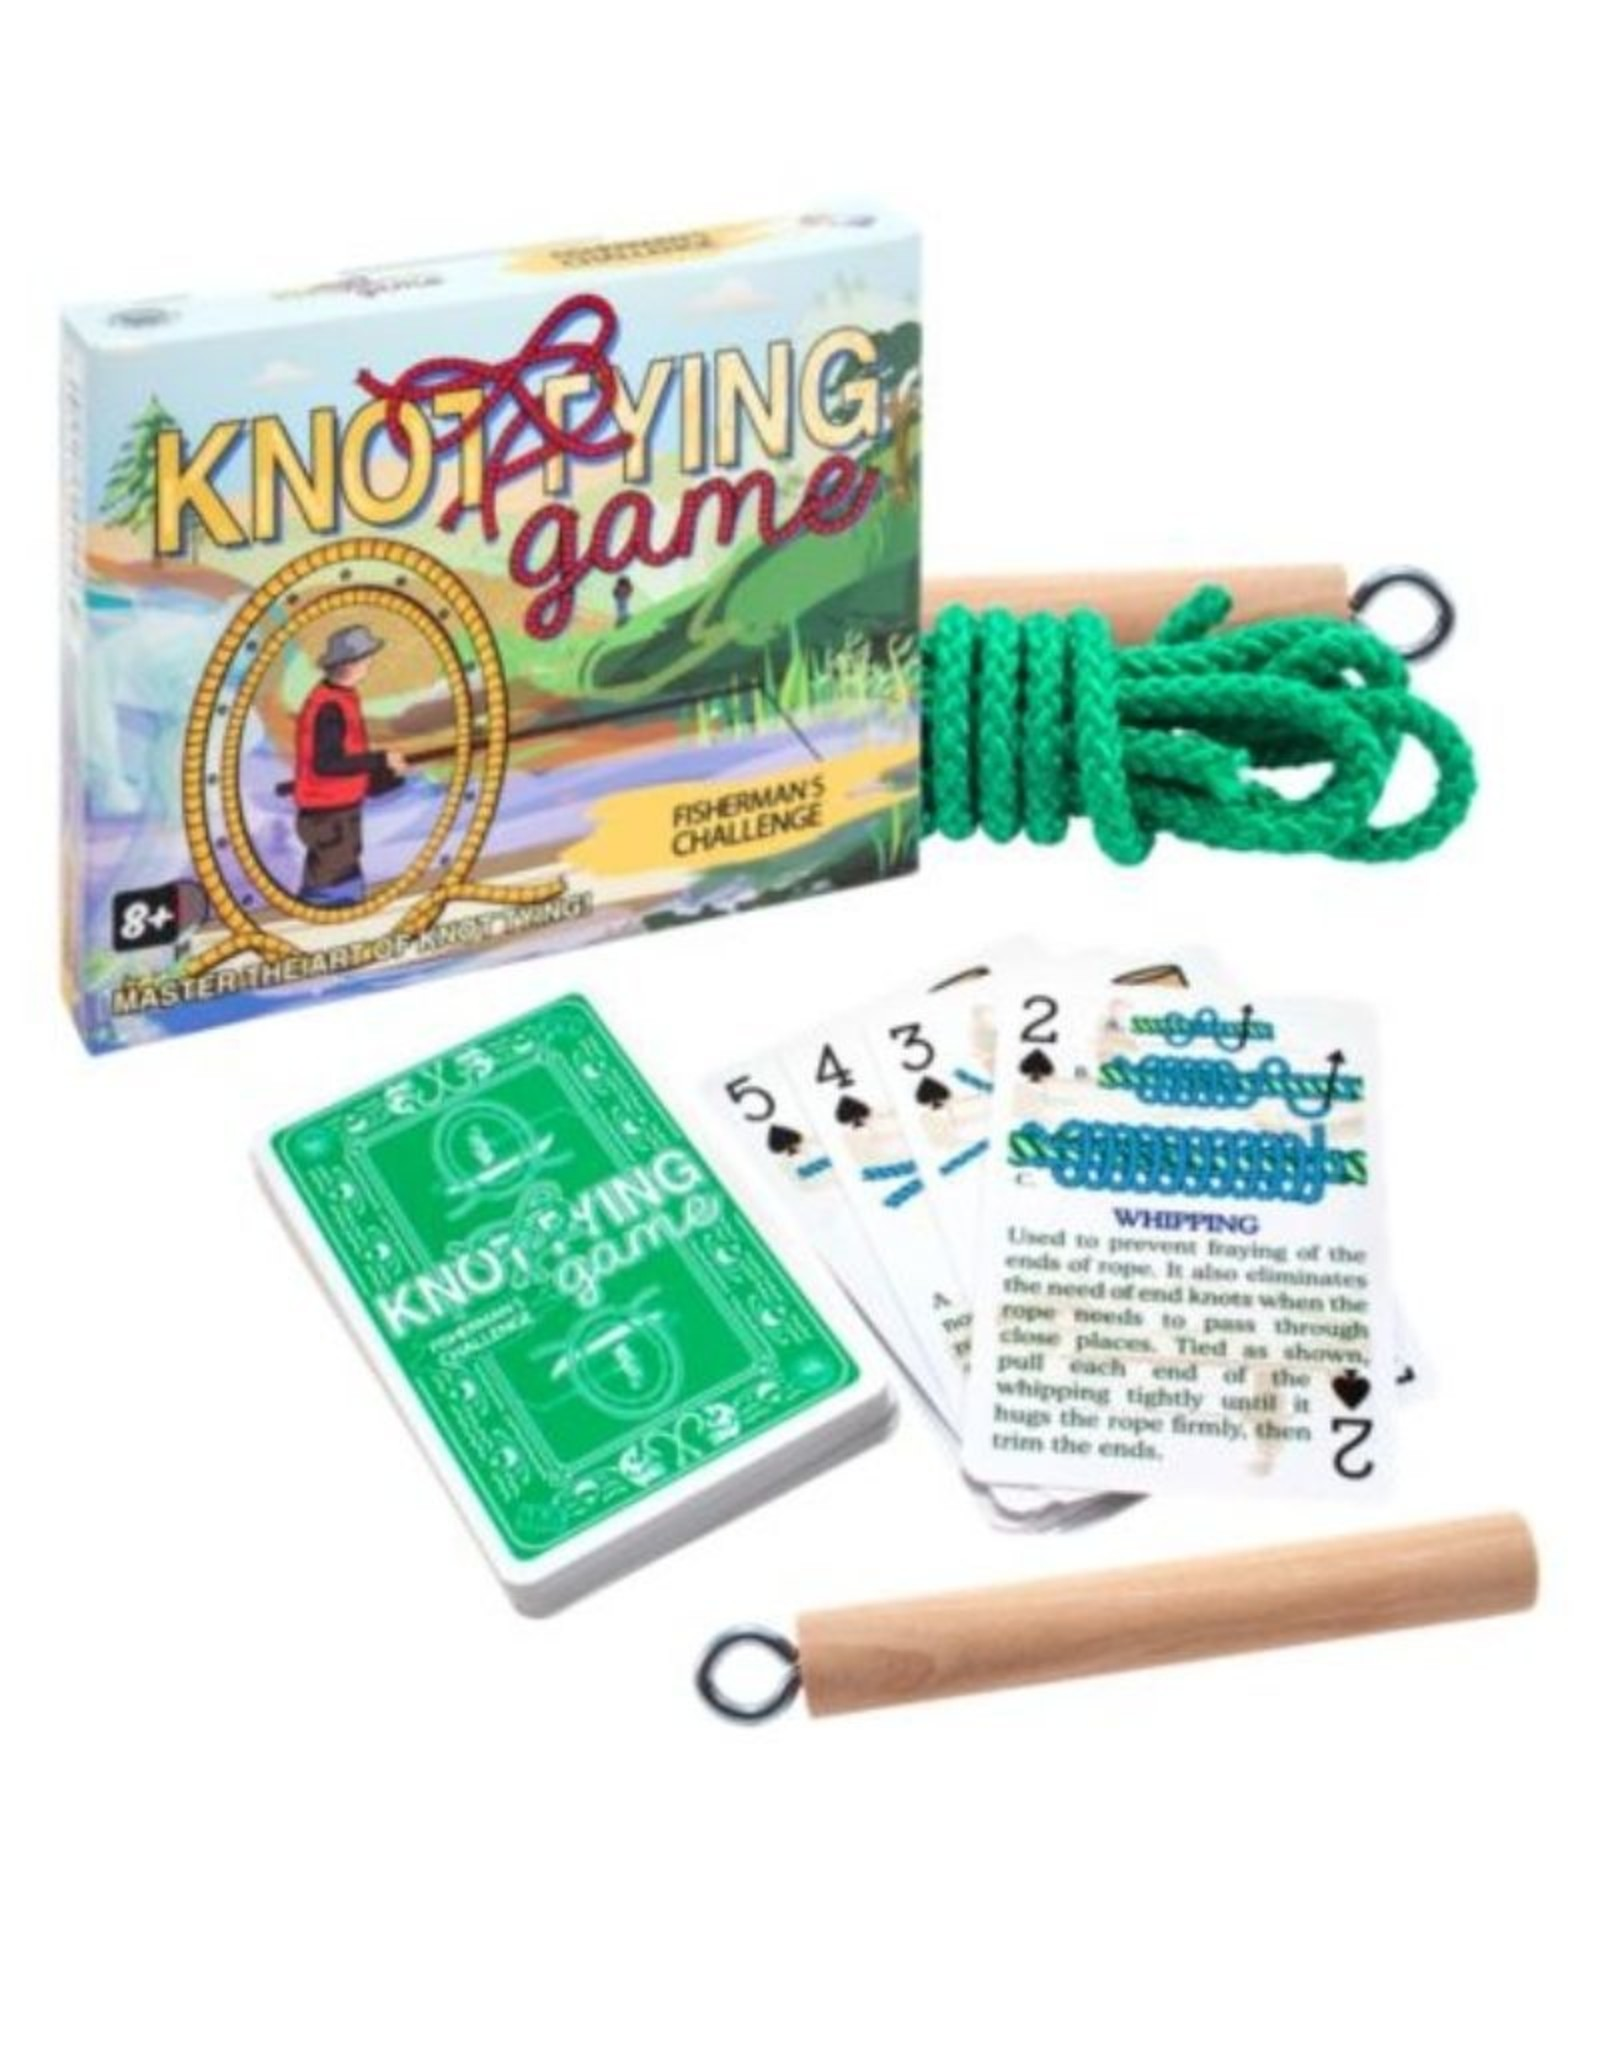 Channel Craft Knot Tying Fisherman